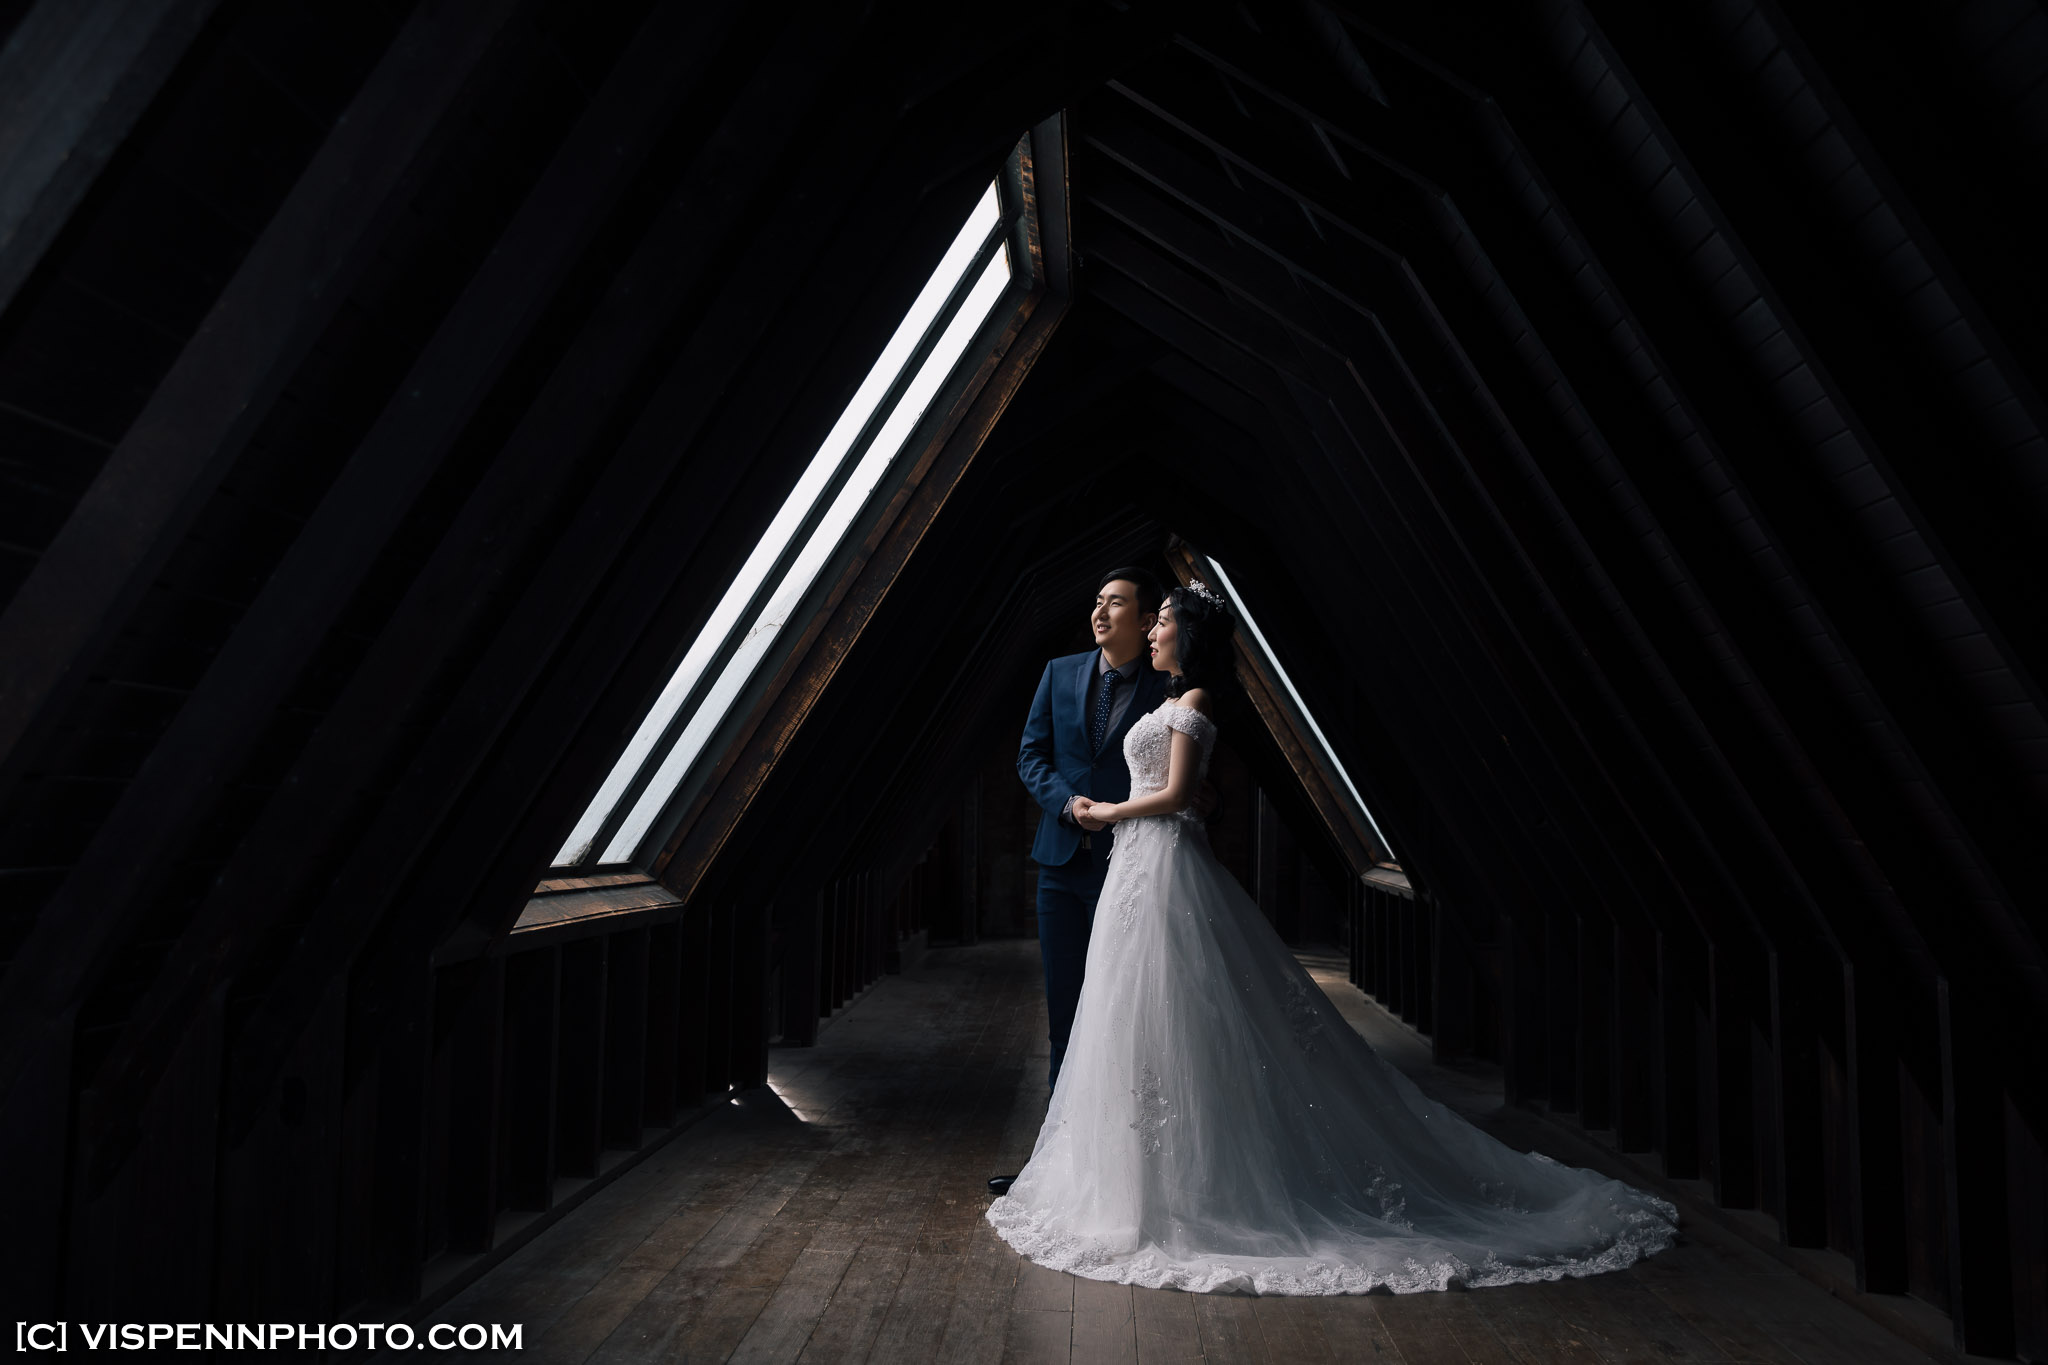 PRE WEDDING Photography Melbourne ZHPENN 5D4 0337